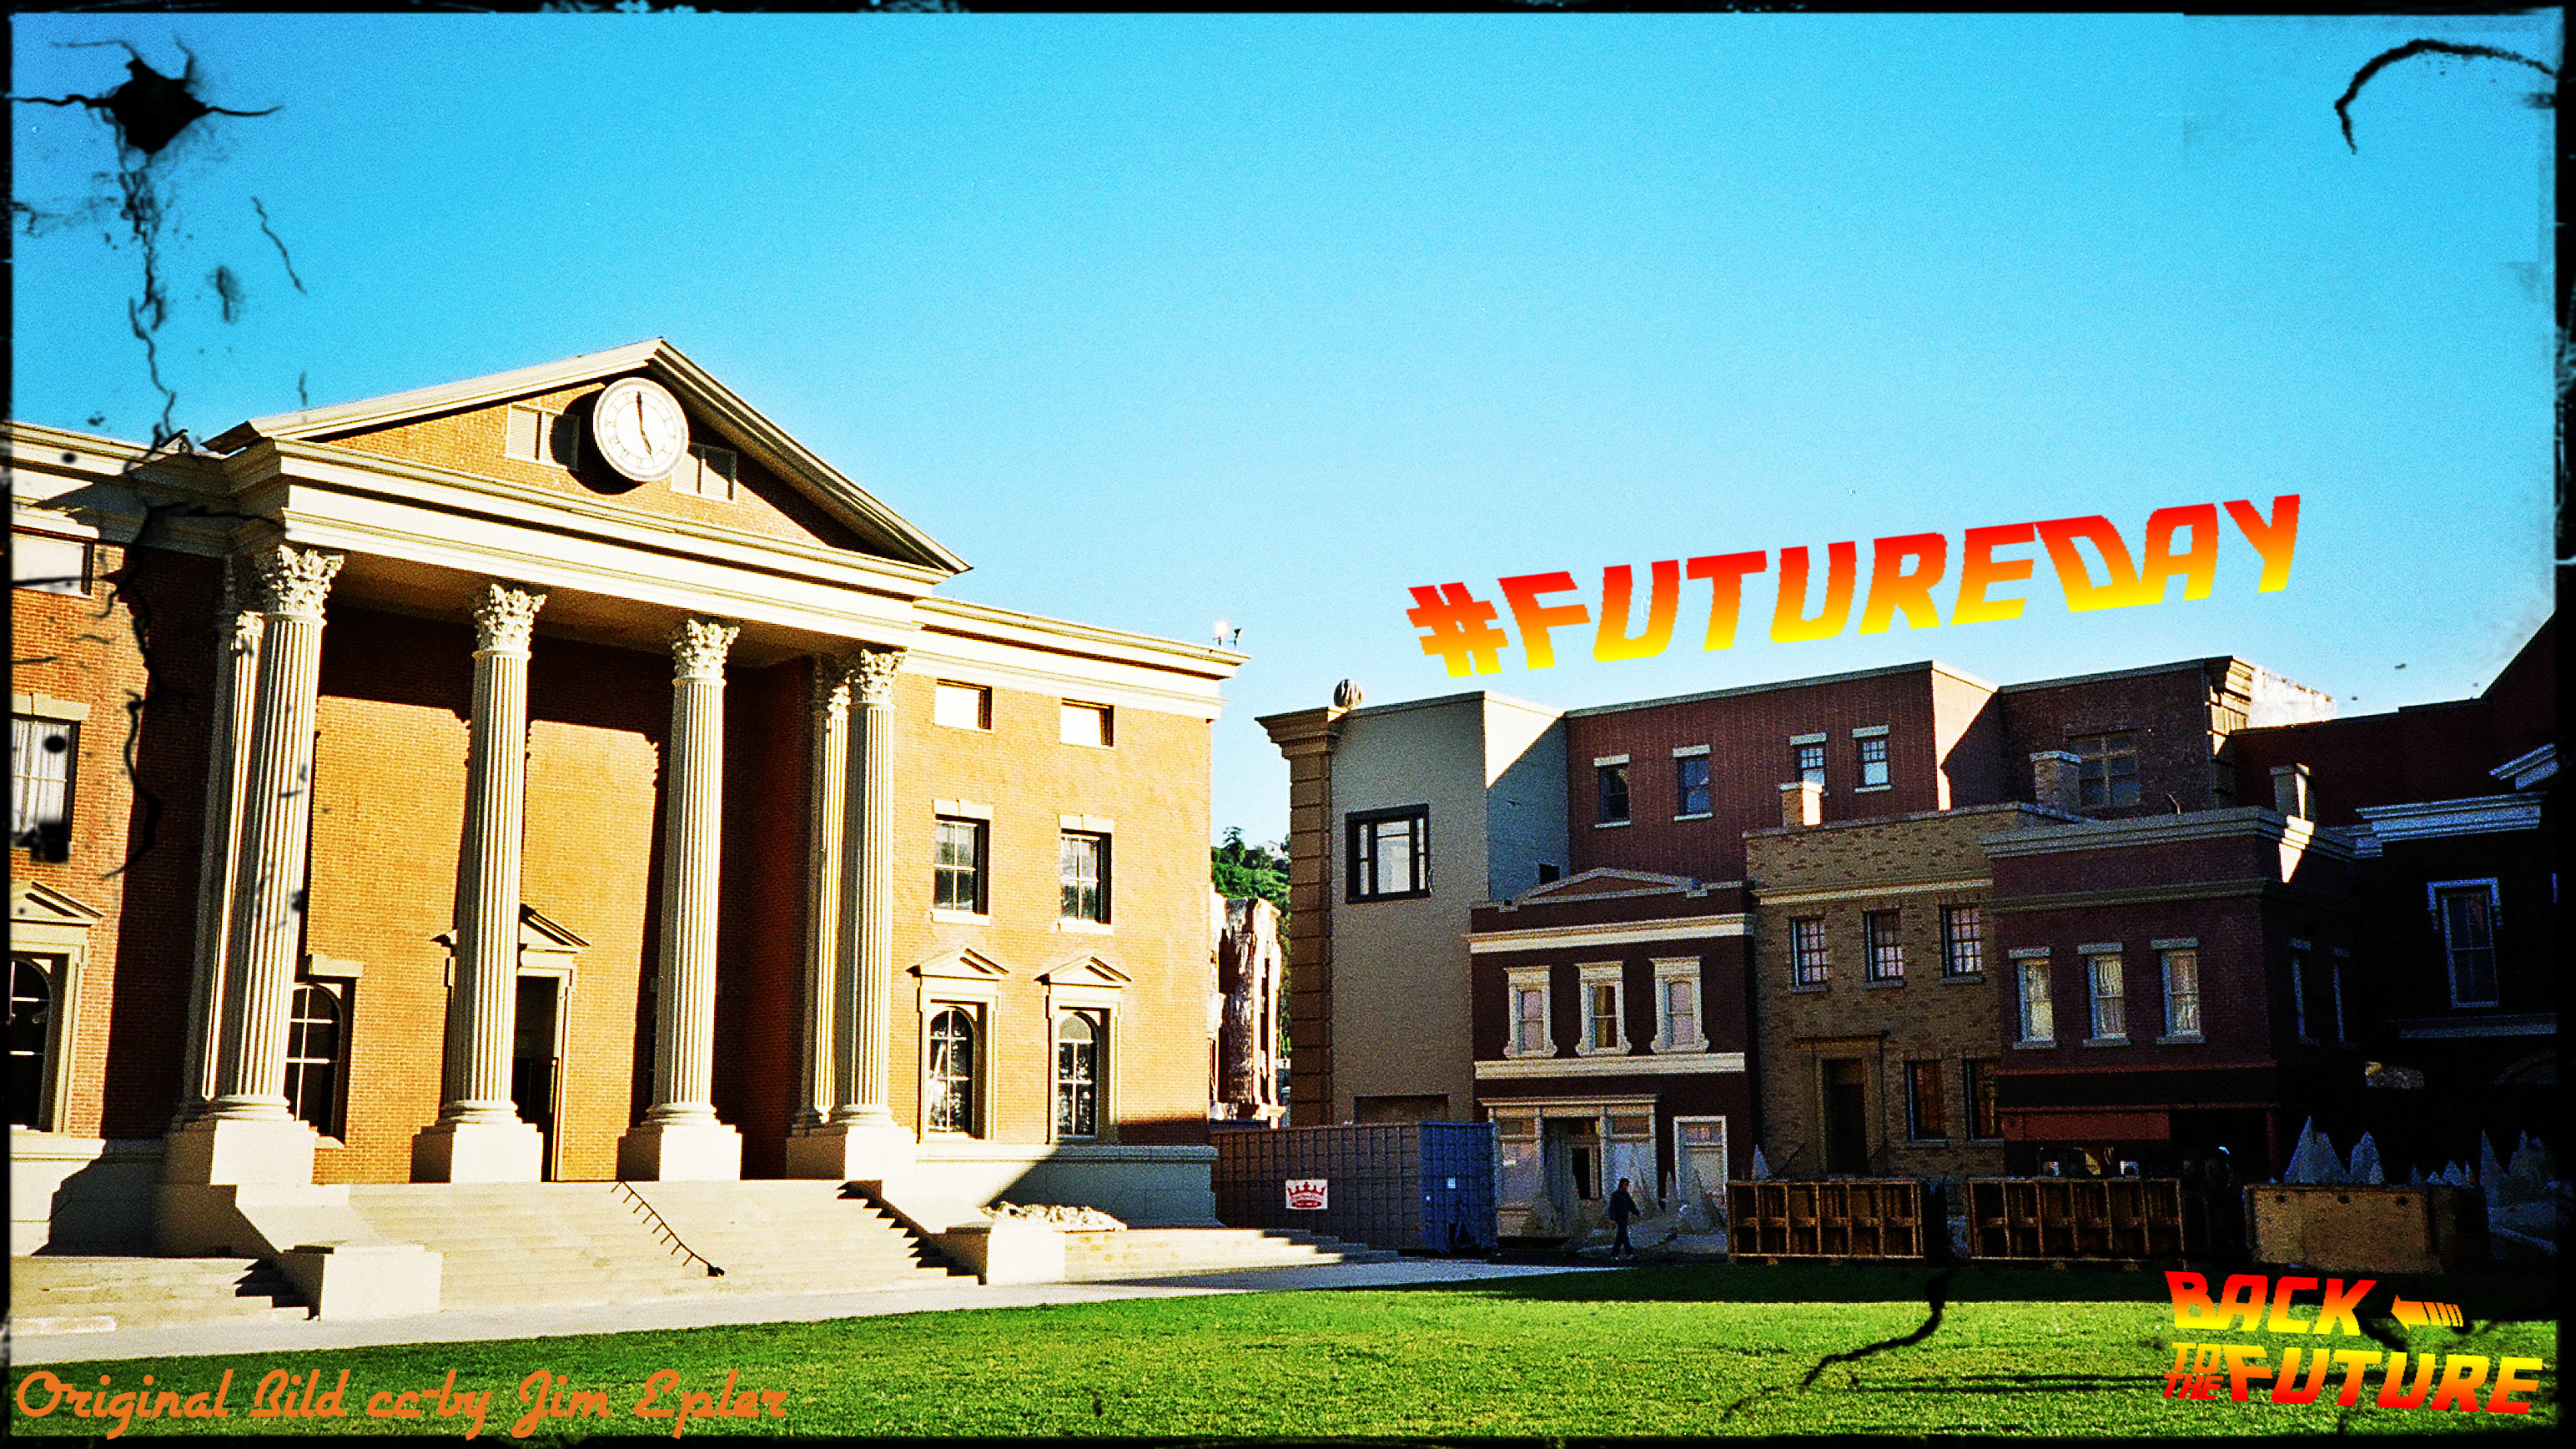 Final_BTTF_FutureDay_Courthouse Square Universal Studios - cc-by Jim Epler